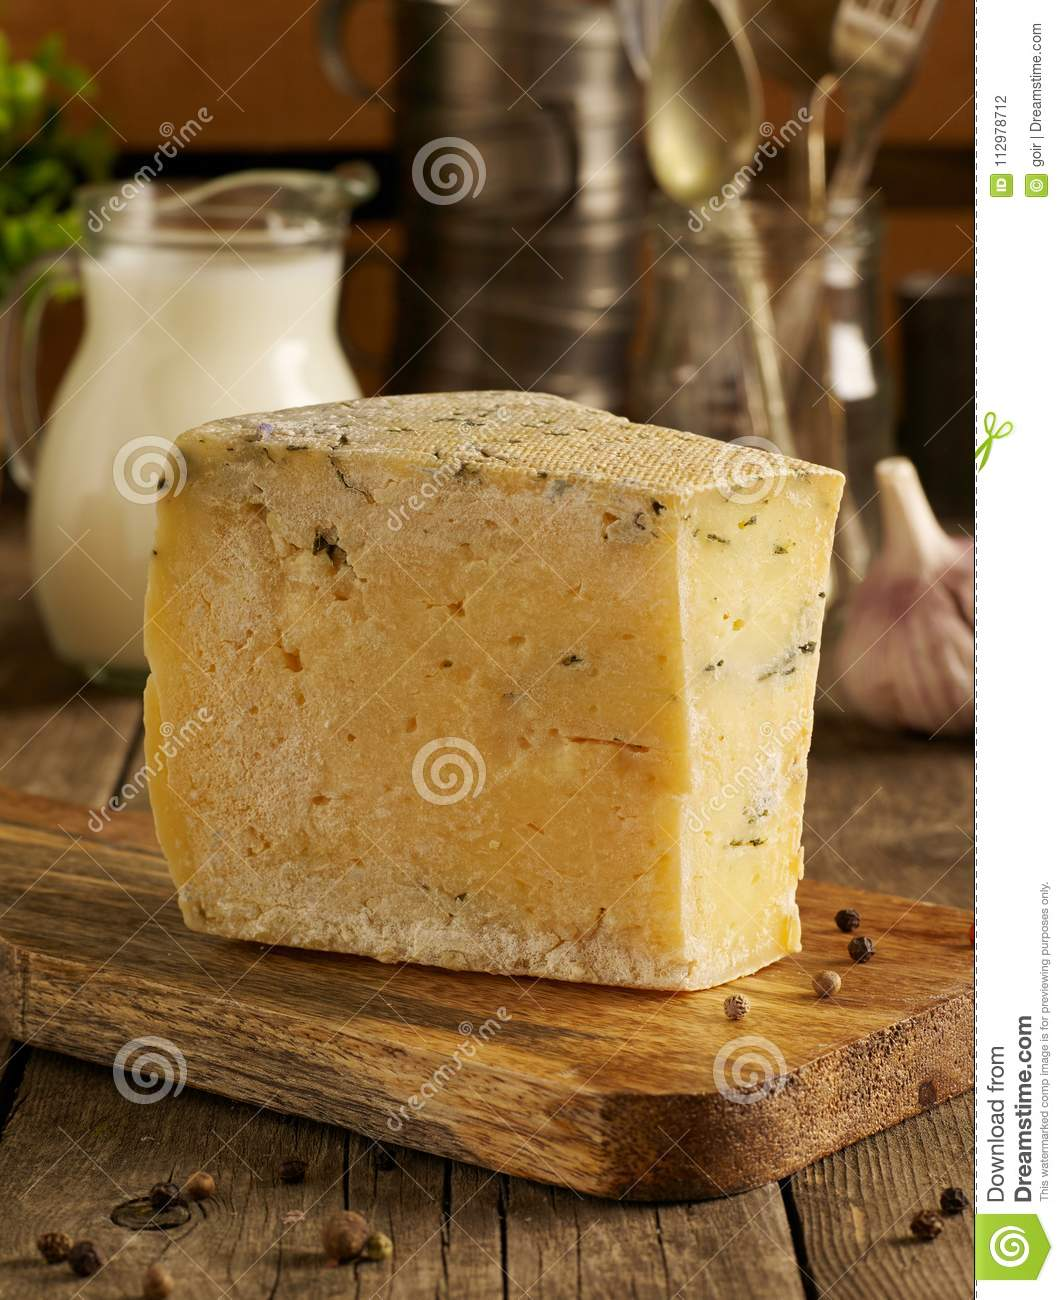 Rustic cheese from above